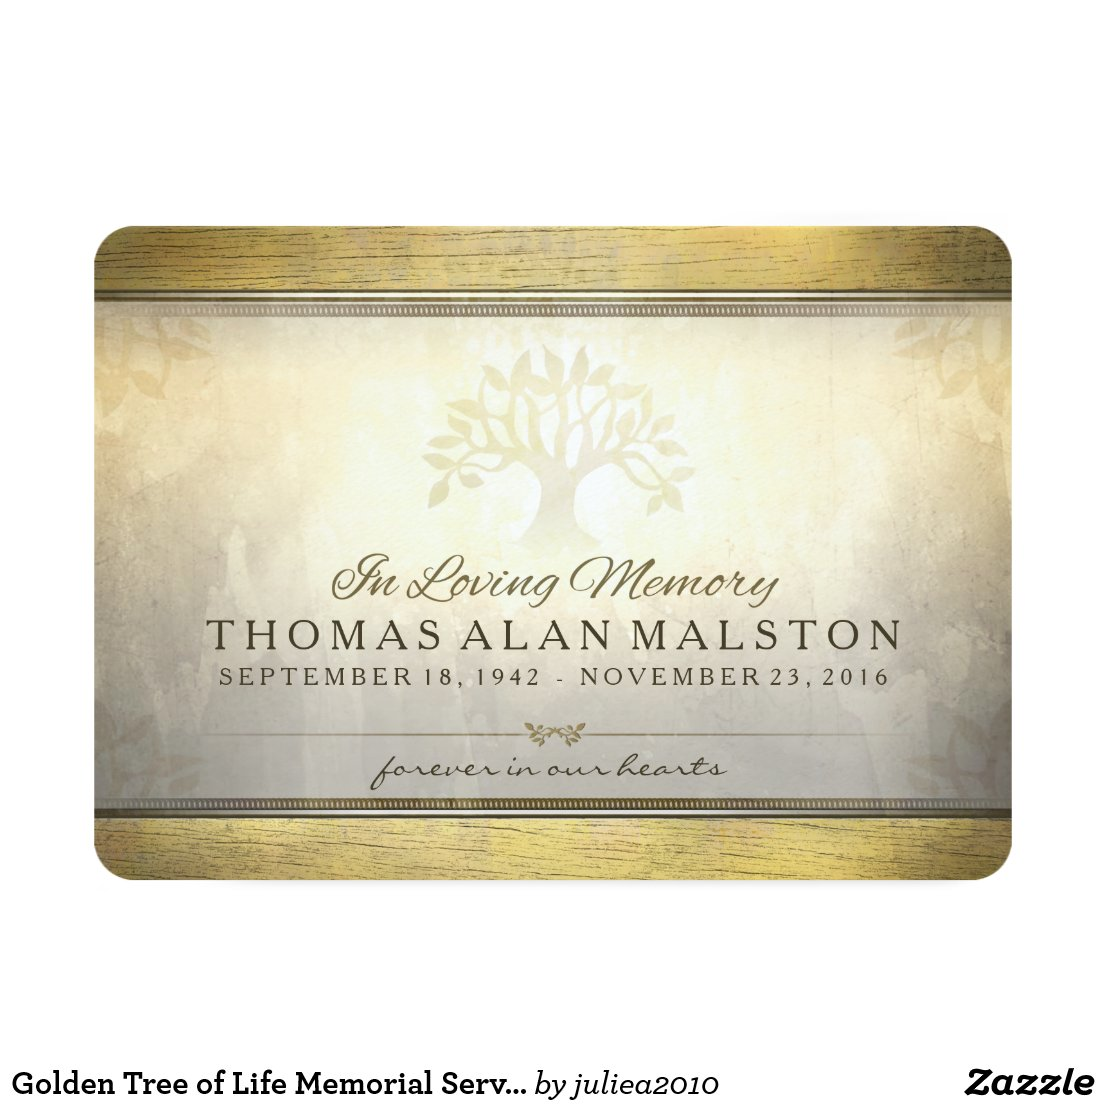 Golden Tree of Life Memorial Service Invitation